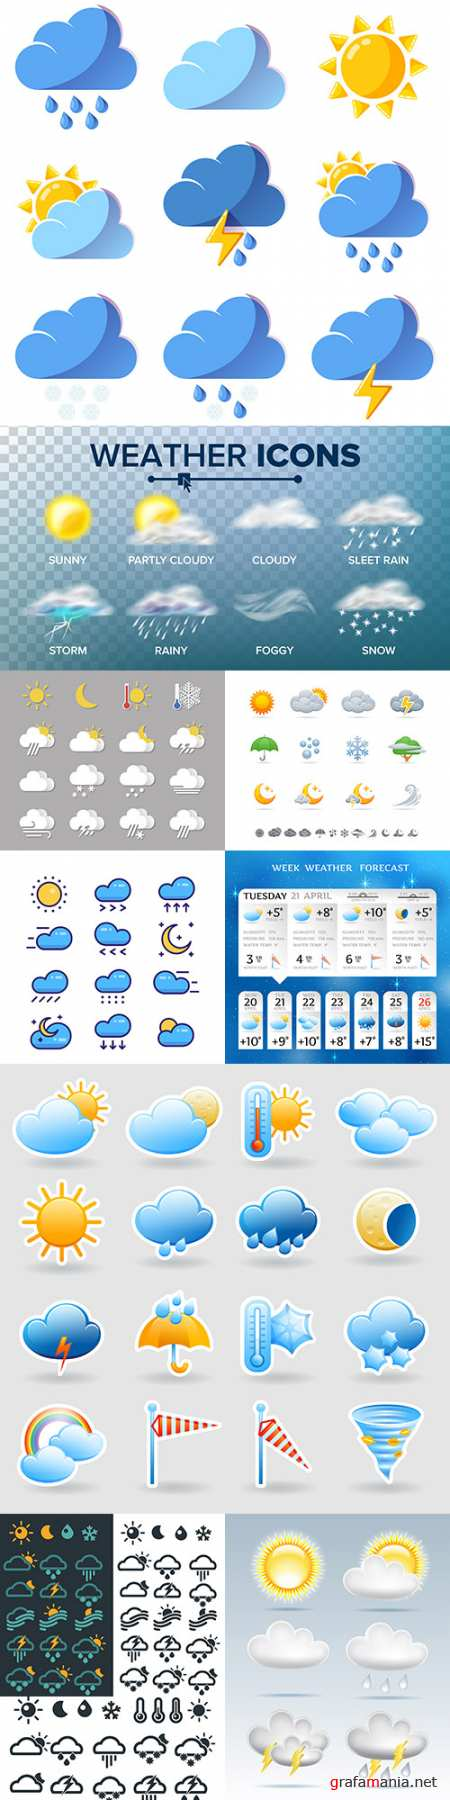 Weather forecast collection meteorological icons